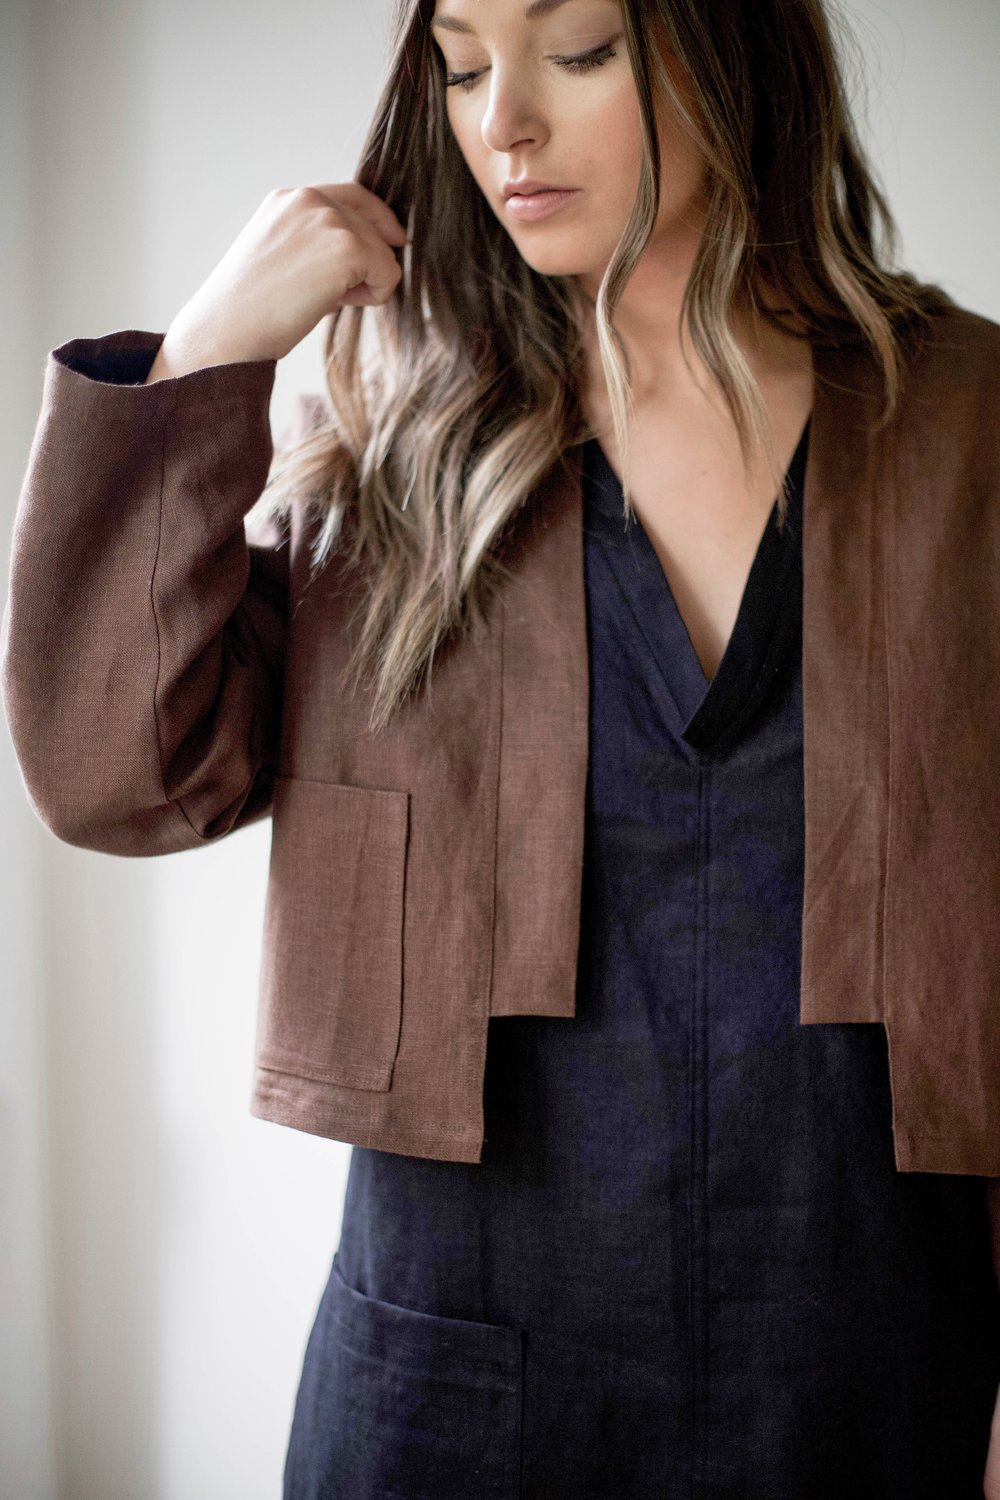 nomi-designs_ann-jacket_chocolate-colored-natural-linen-jacket_front-pocket-detail_paired-with-linen-dress.jpg